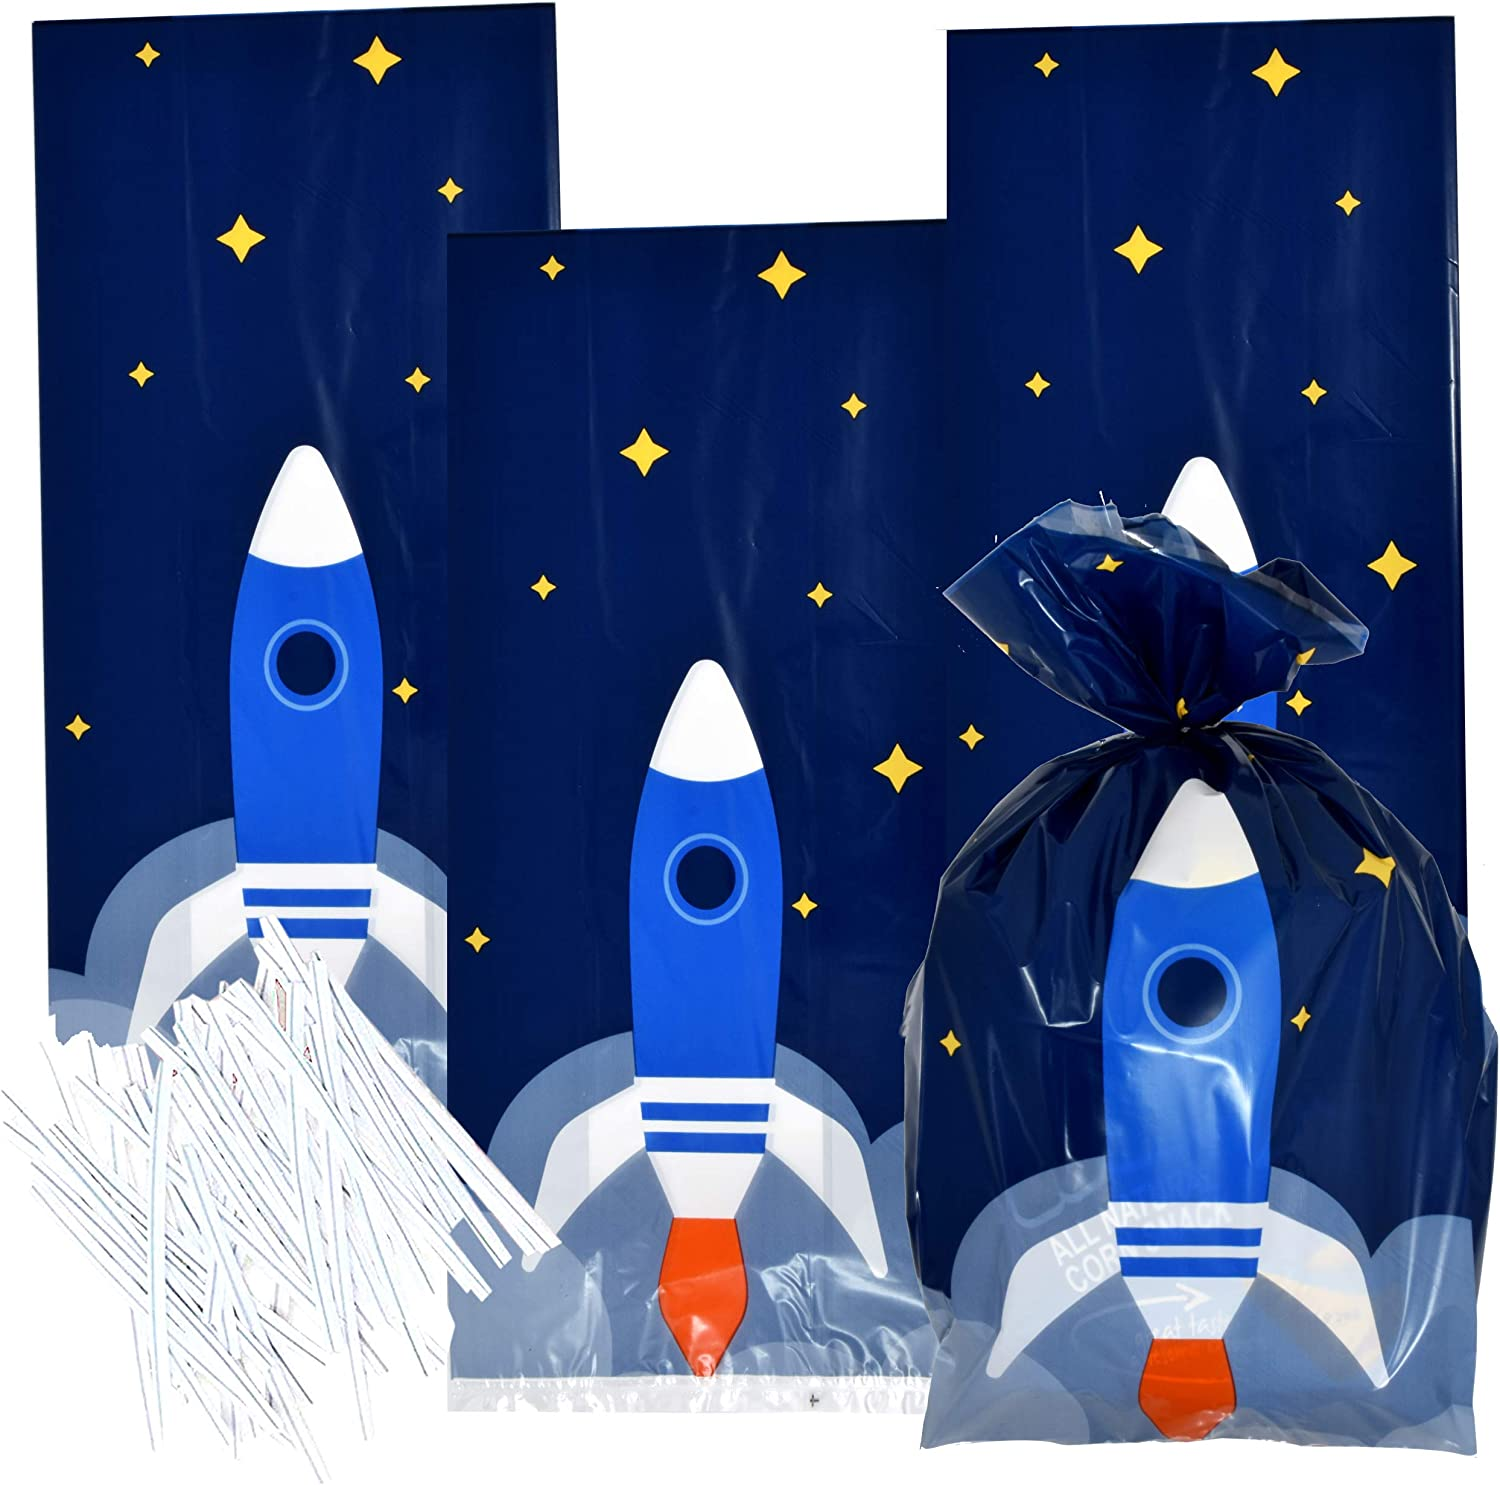 PROLOSO 24 Pack Outer Space Party Favor Bags with Stickers Clips Rope Planet Galaxy Treat Bags Candy Goody Bags Gift Bags Solar System Theme Party Supplies